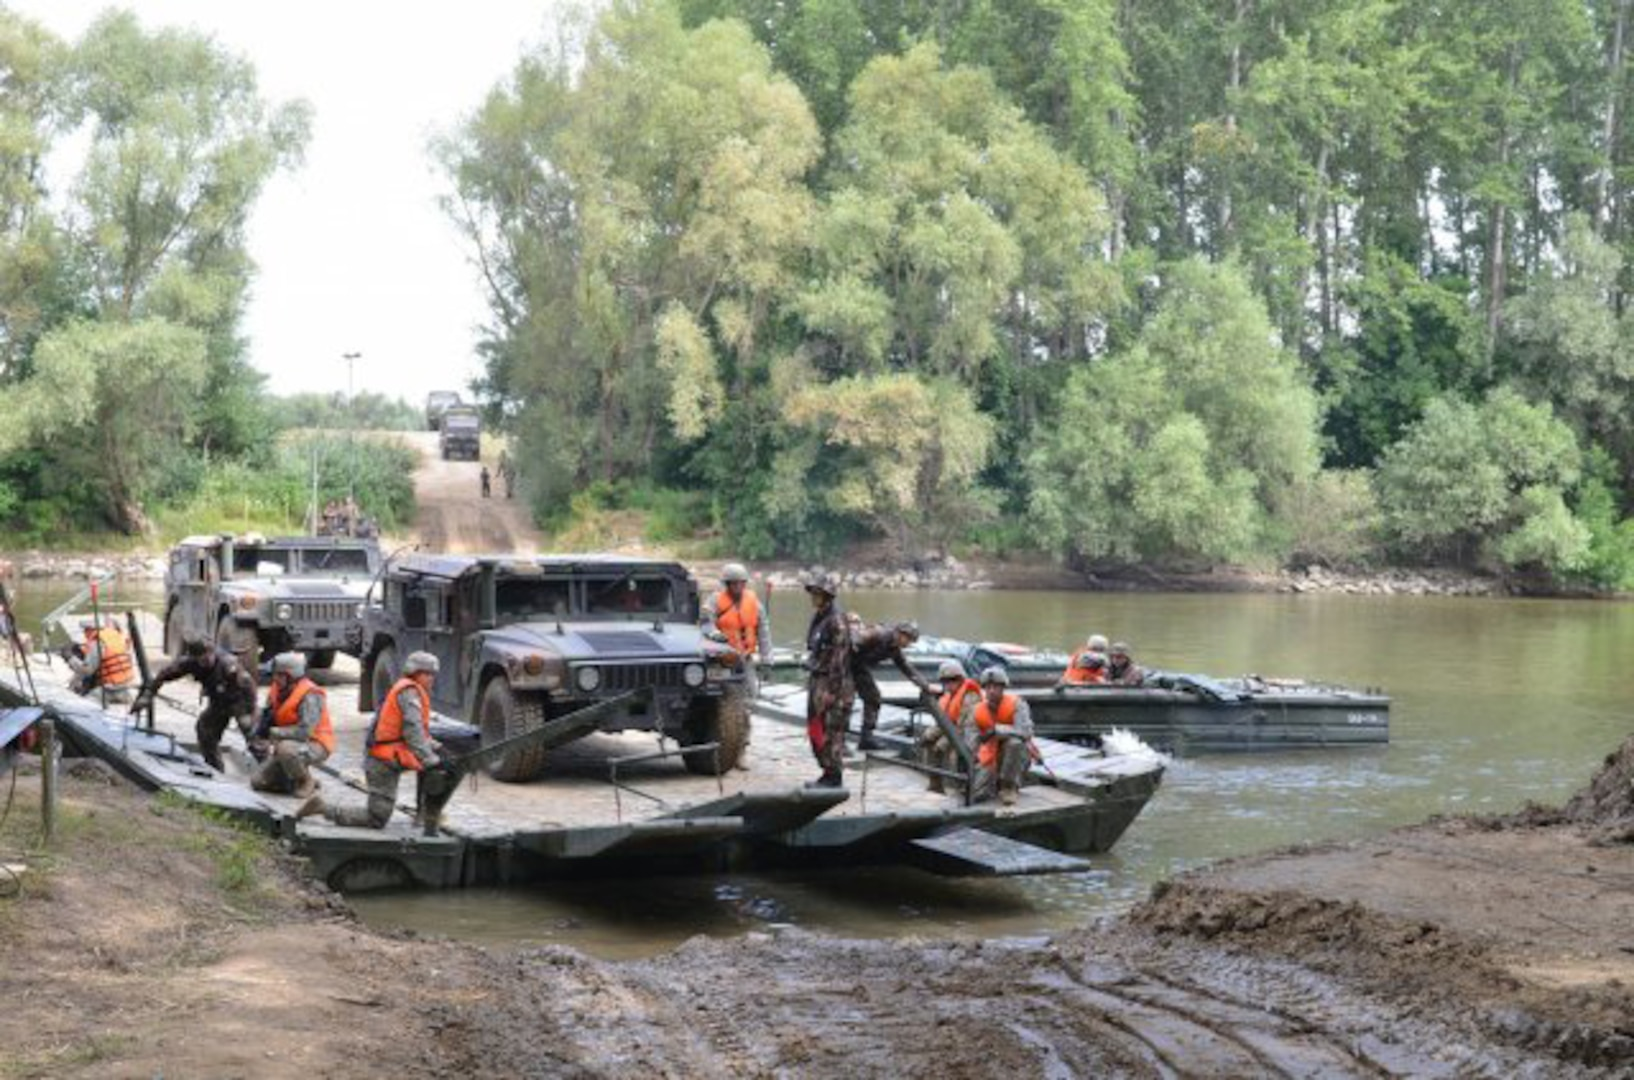 GYOR, Hungary - Military vehicles belonging to 1st squadron, 2nd Cavalry Regiment, Vilseck, Germany, are ferried over the Danube River during a rehearsal river crossing at Gyor, July 4. The ferry is employed by 837th Brigade Engineer Battalion, Ohio National Guard, and 37th Engineer Regiment, Hungarian Ground Forces. The exercise, Szentes Axe, a Hungarian-led exercise under Saber Guardian, facilitates the freedom of movement for 2nd Cavalry Regiment as the unit moves into Romania for more training with NATO Allies and partners. Saber Guardian is the largest exercise in the Black Sea Region and will take place in three countries. (U.S. Army photo by Sgt. Shiloh Capers) (Photo Credit: Sgt. Shiloh Capers)